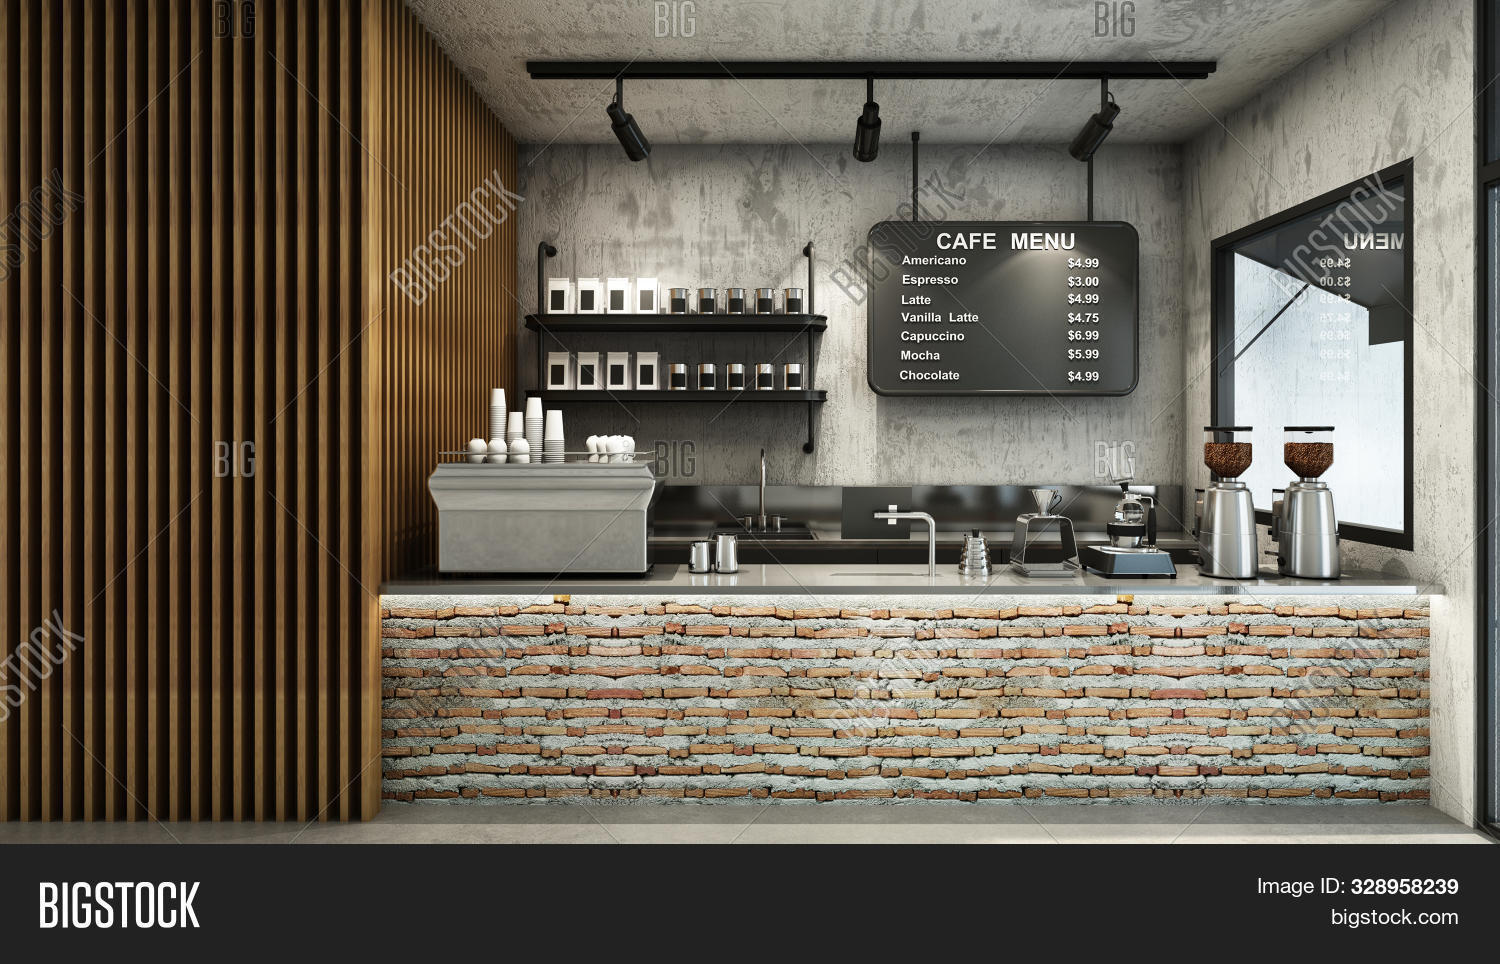 Cafe Shop Restaurant Image Photo Free Trial Bigstock